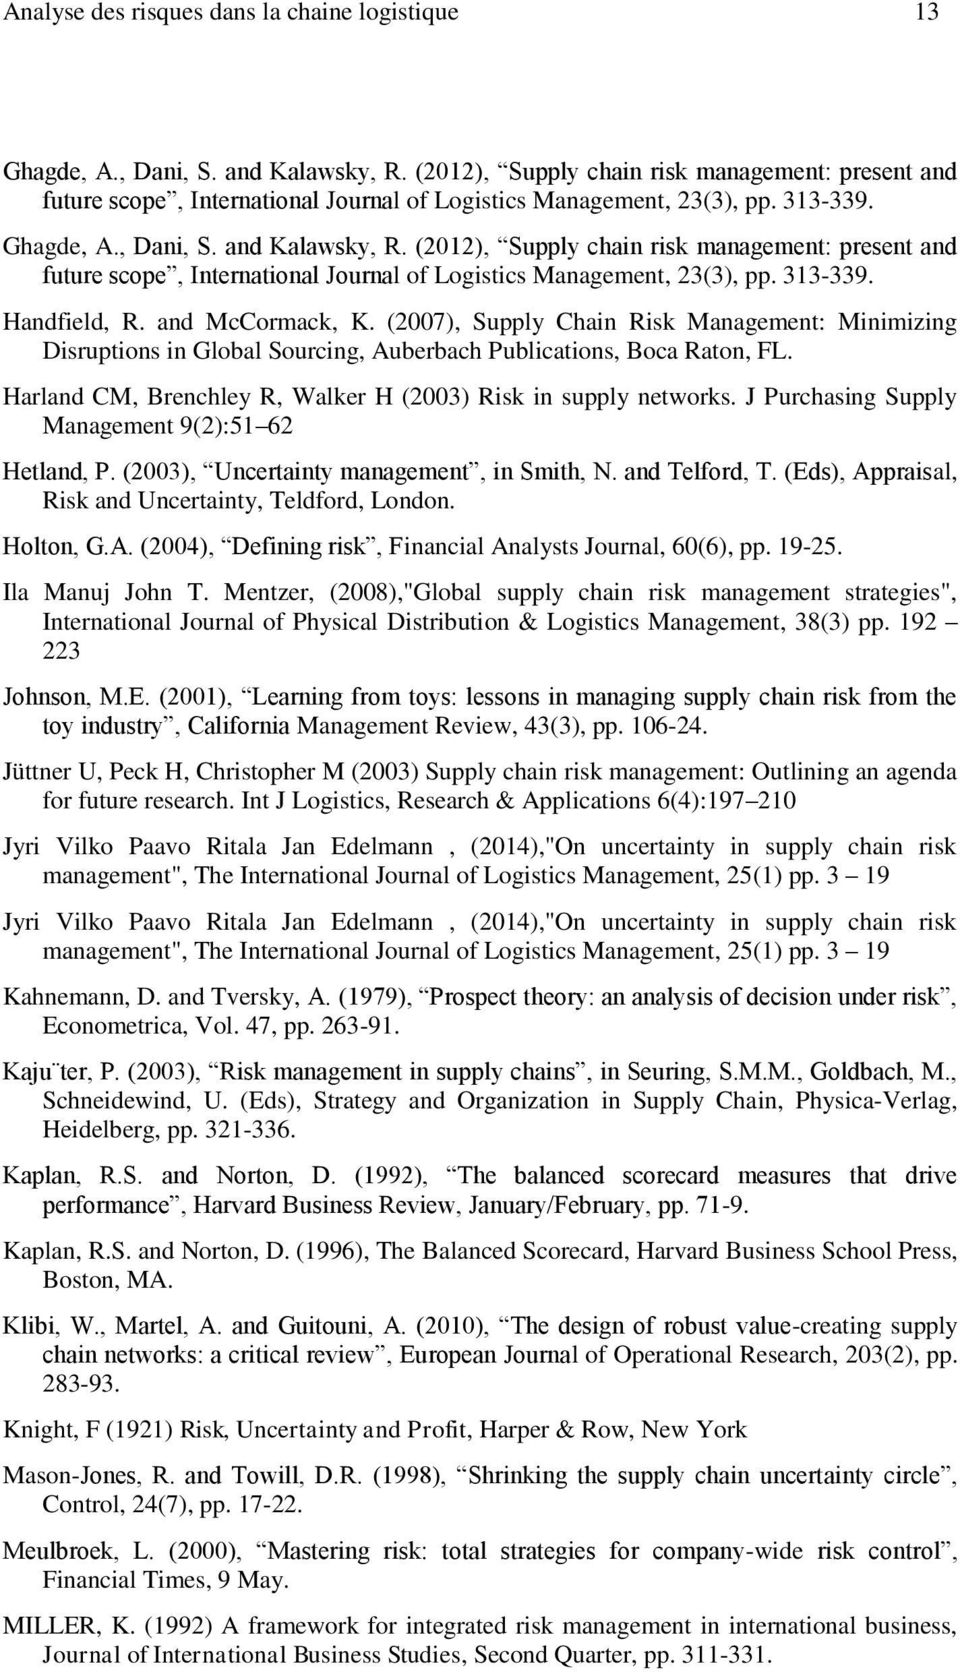 supply chain management journal articles pdf